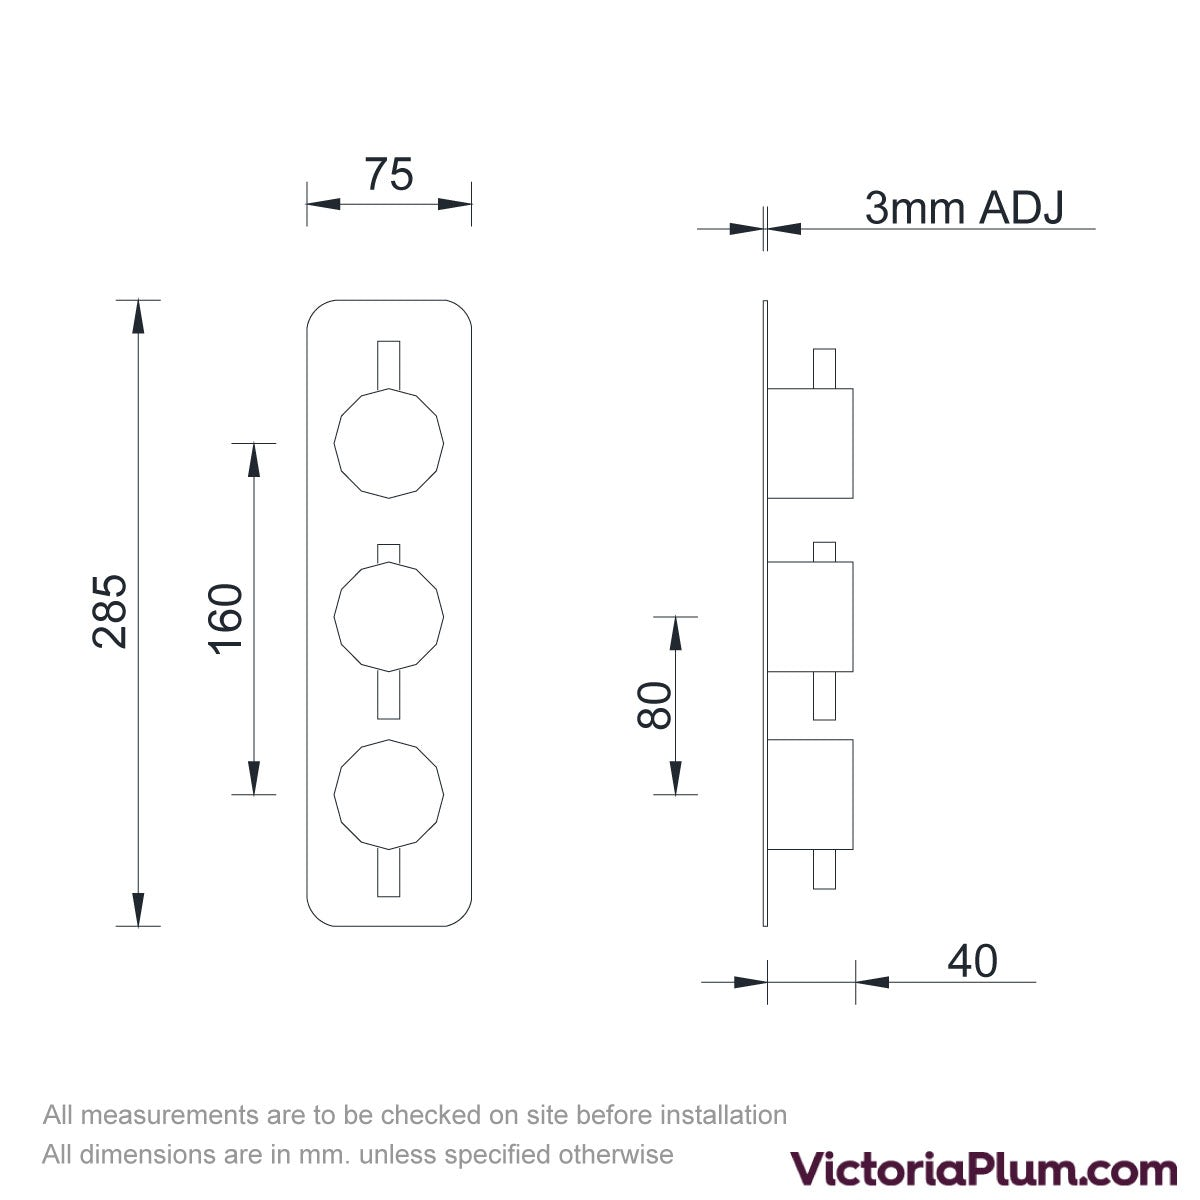 Dimensions for Mode Heath triple thermostatic shower valve